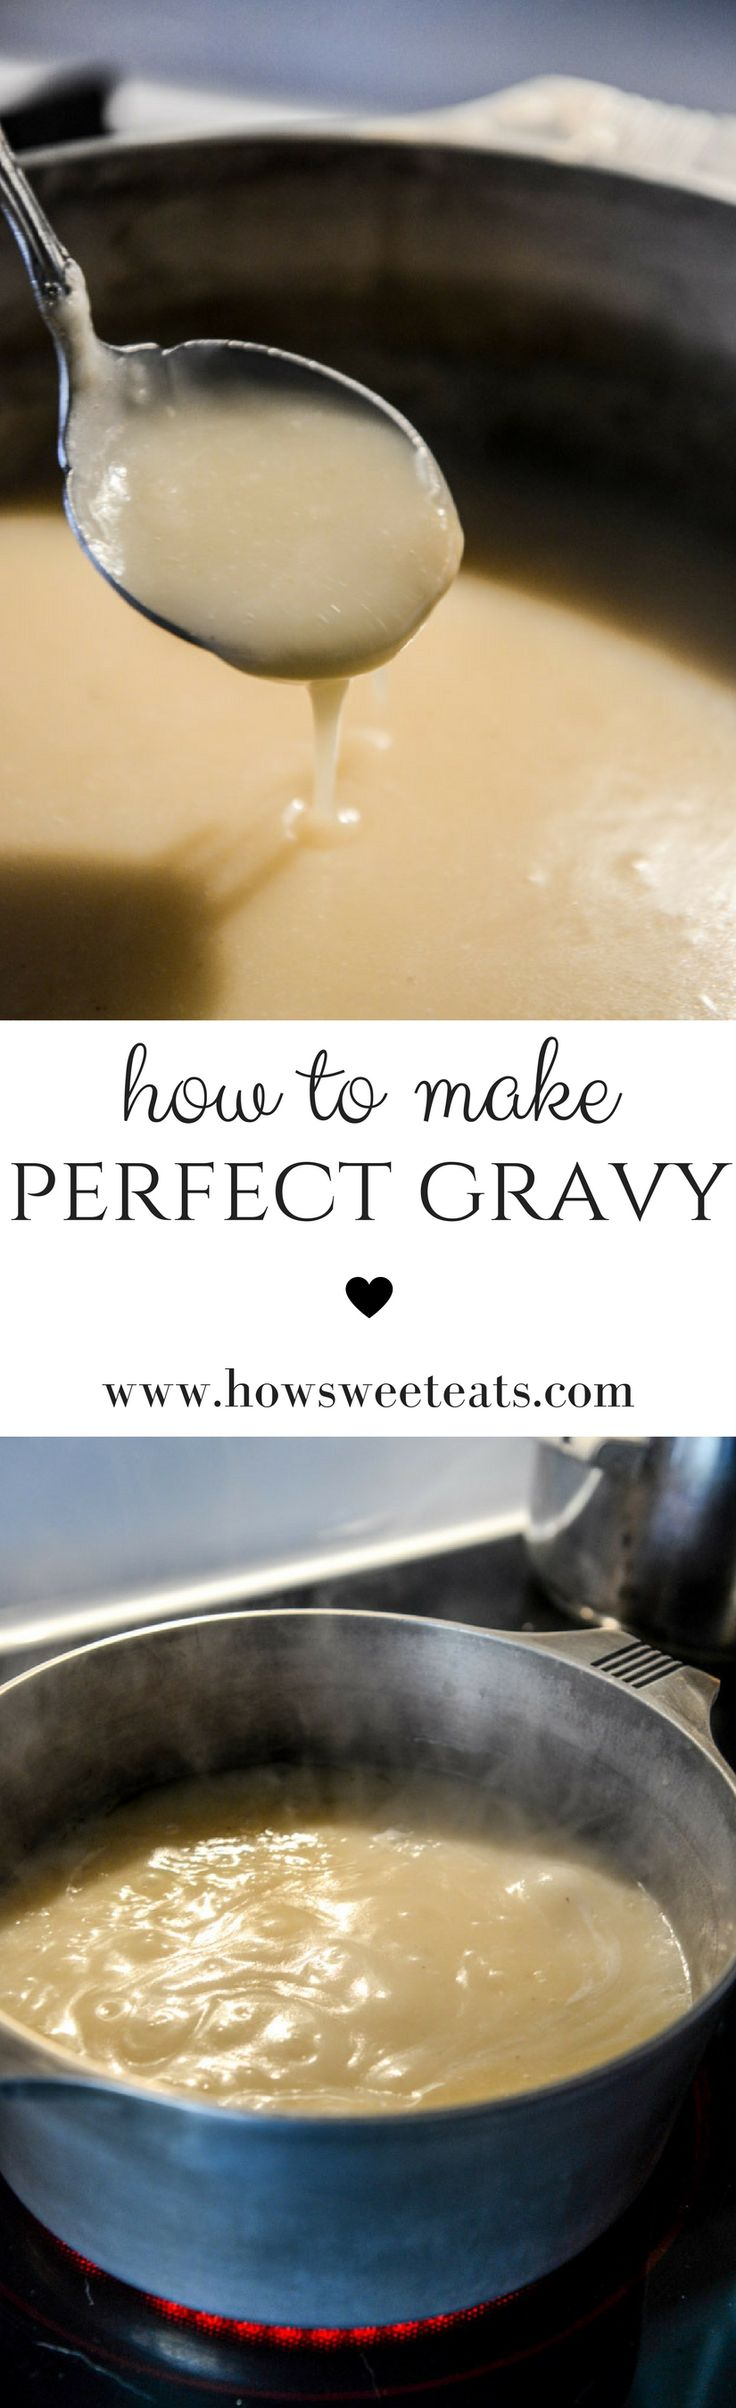 How to Make the BEST Gravy for Thanksgiving! I howsweeteats.com @howsweeteats #thanksgiving